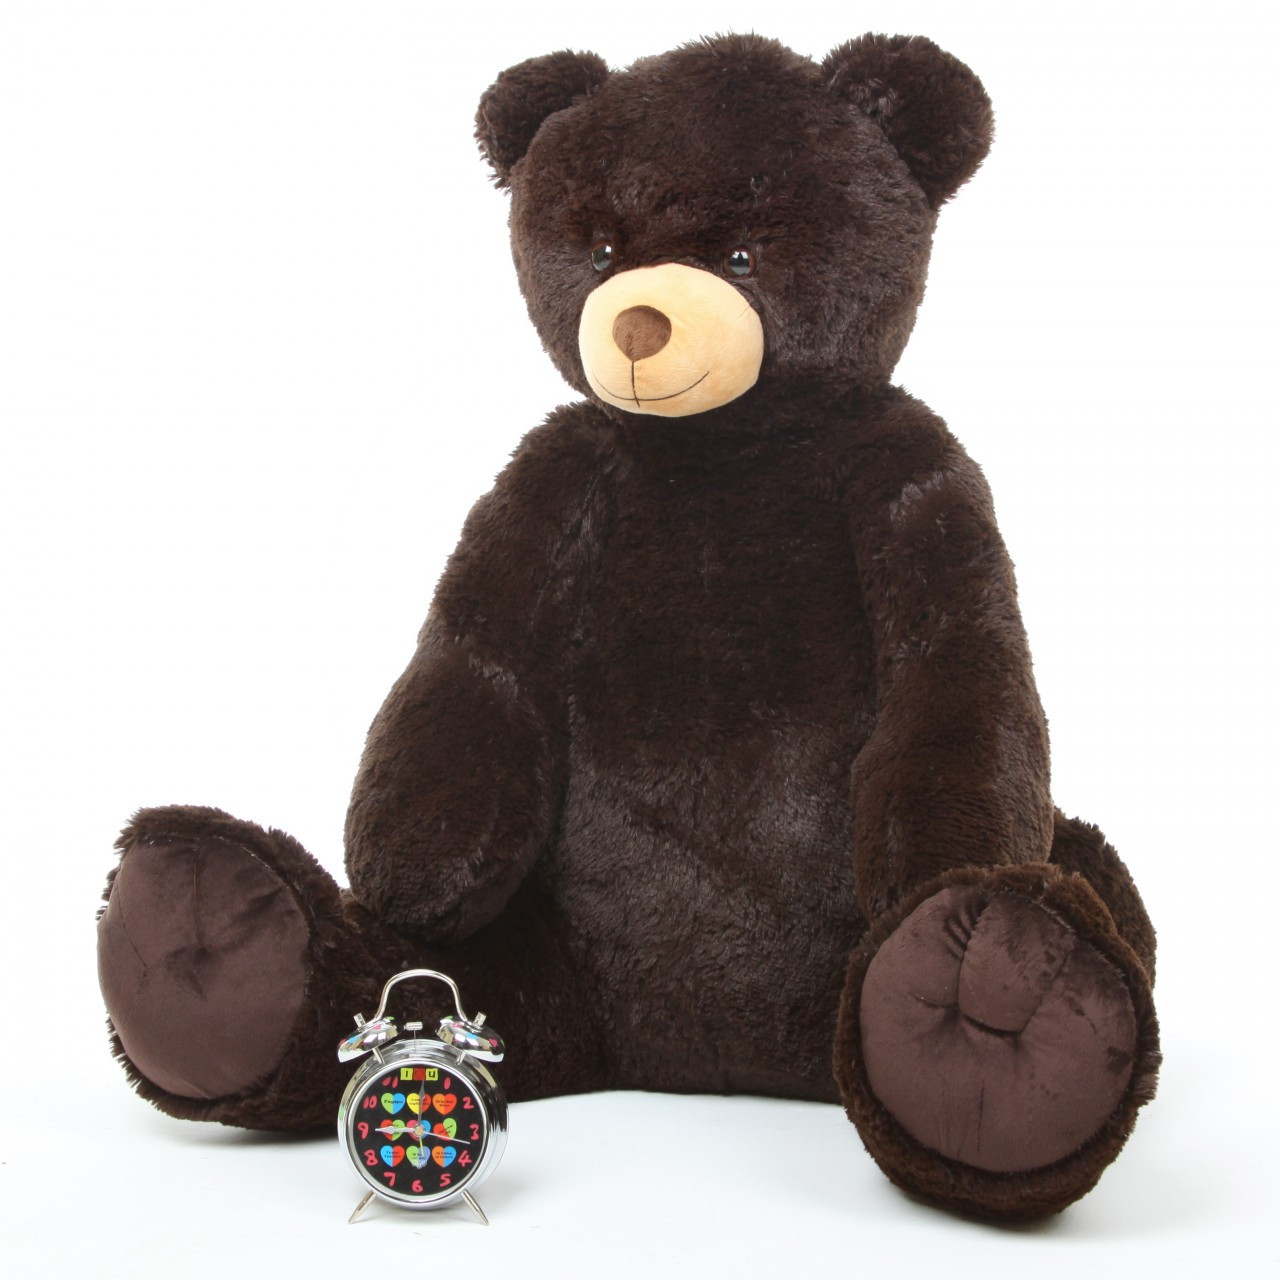 Baby Tubs chocolate brown teddy bear 42in